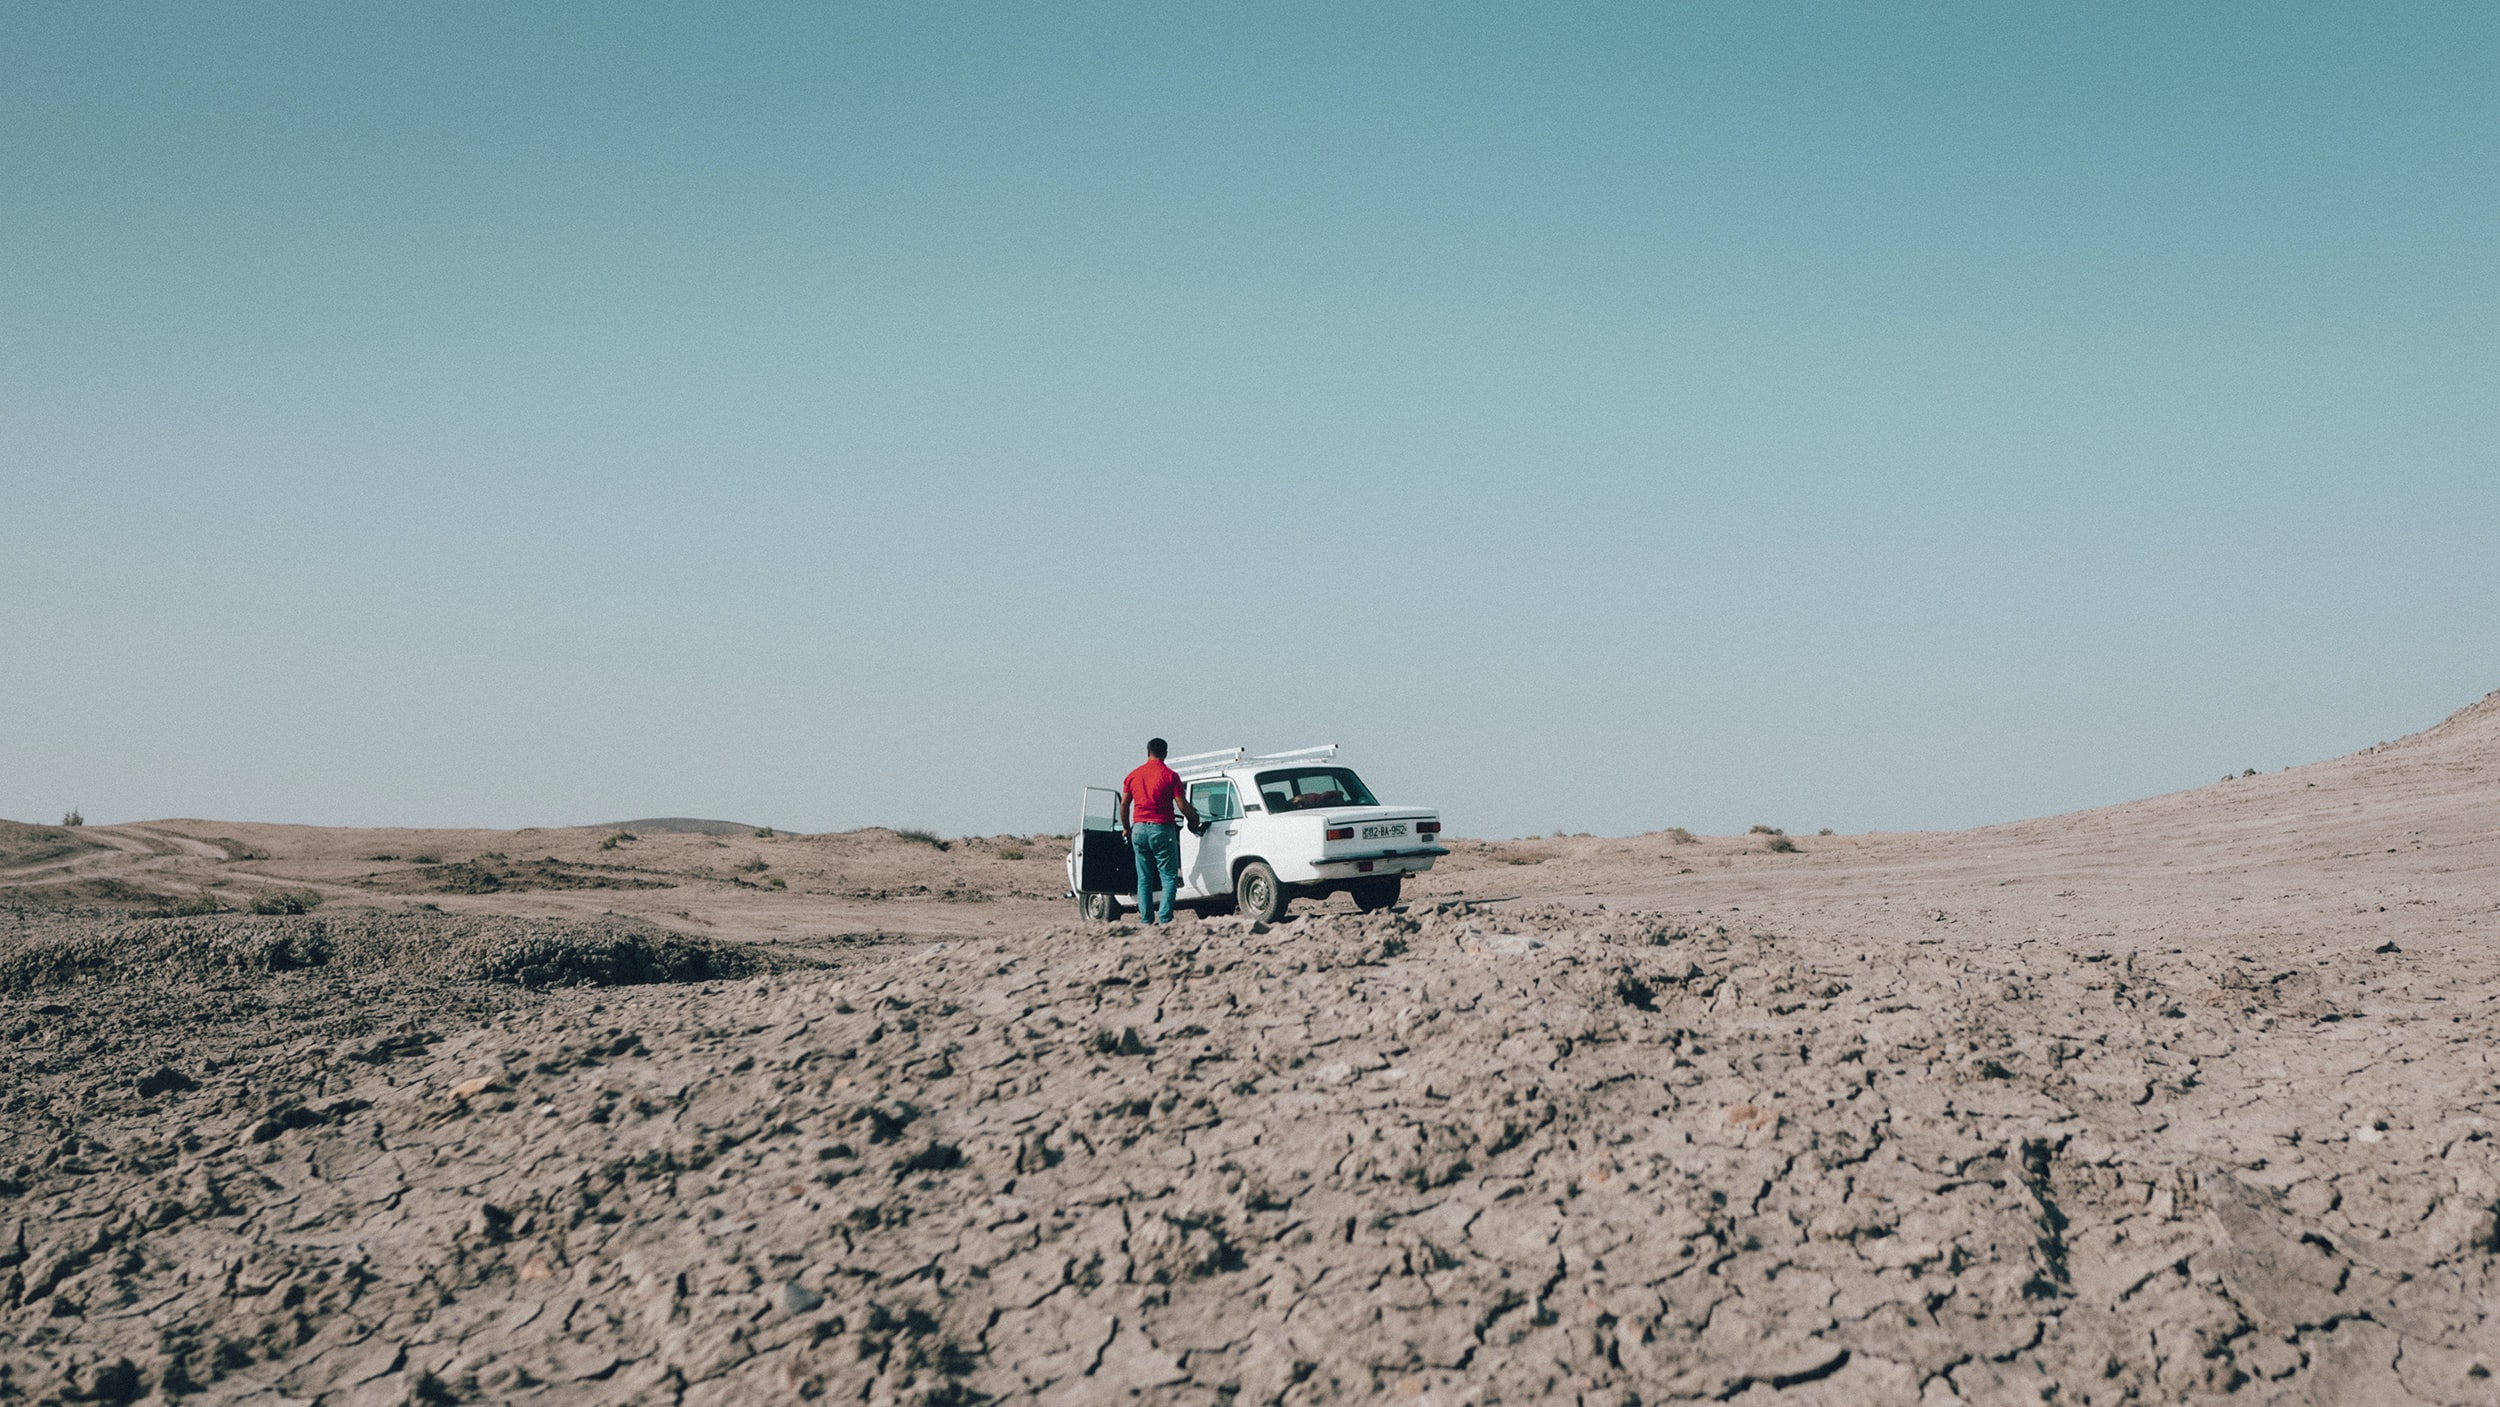 person standing beside vehicle on desert at daytime